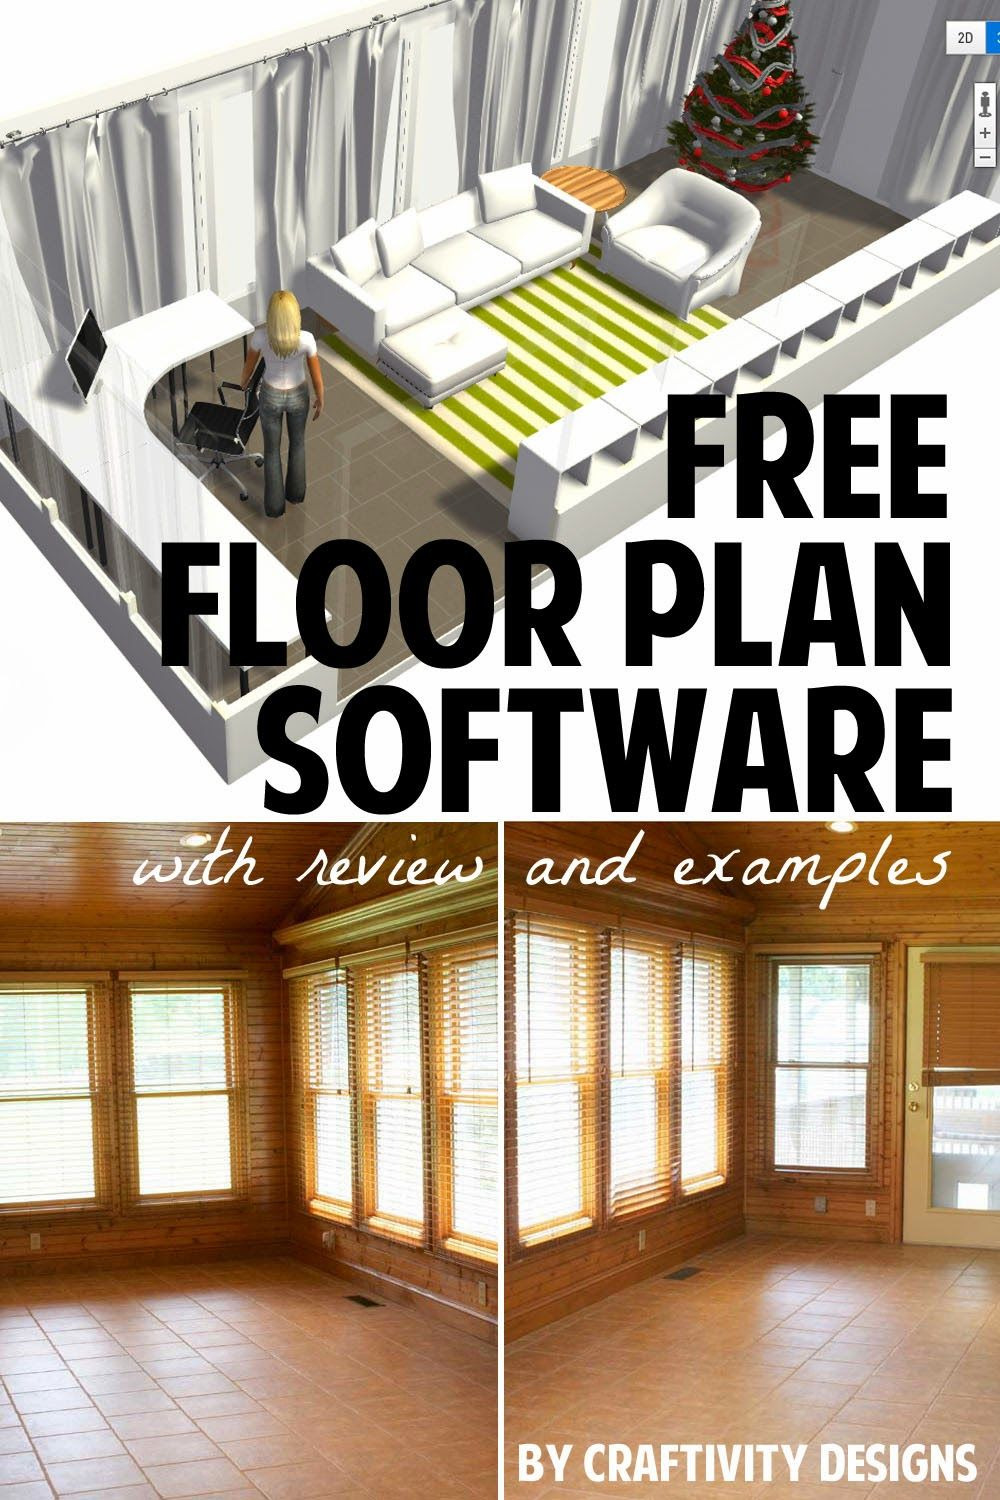 Easy House Plan software Beautiful Quick Easy and Free Floor Plan software